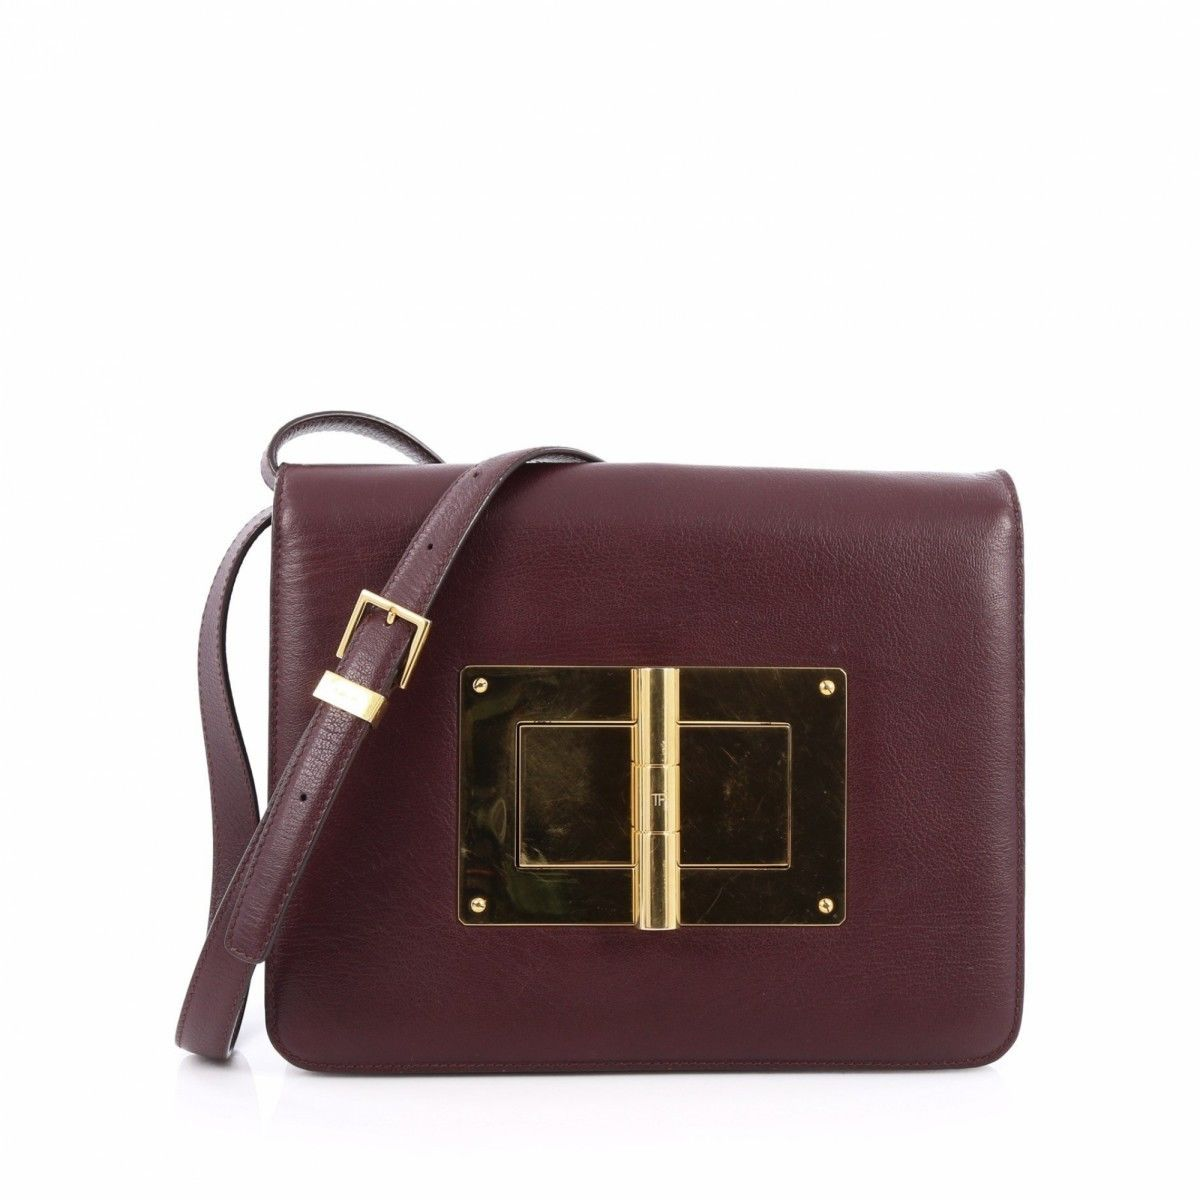 Tom Ford Natalia Convertible Clutch Leather Large 4TVRpk0